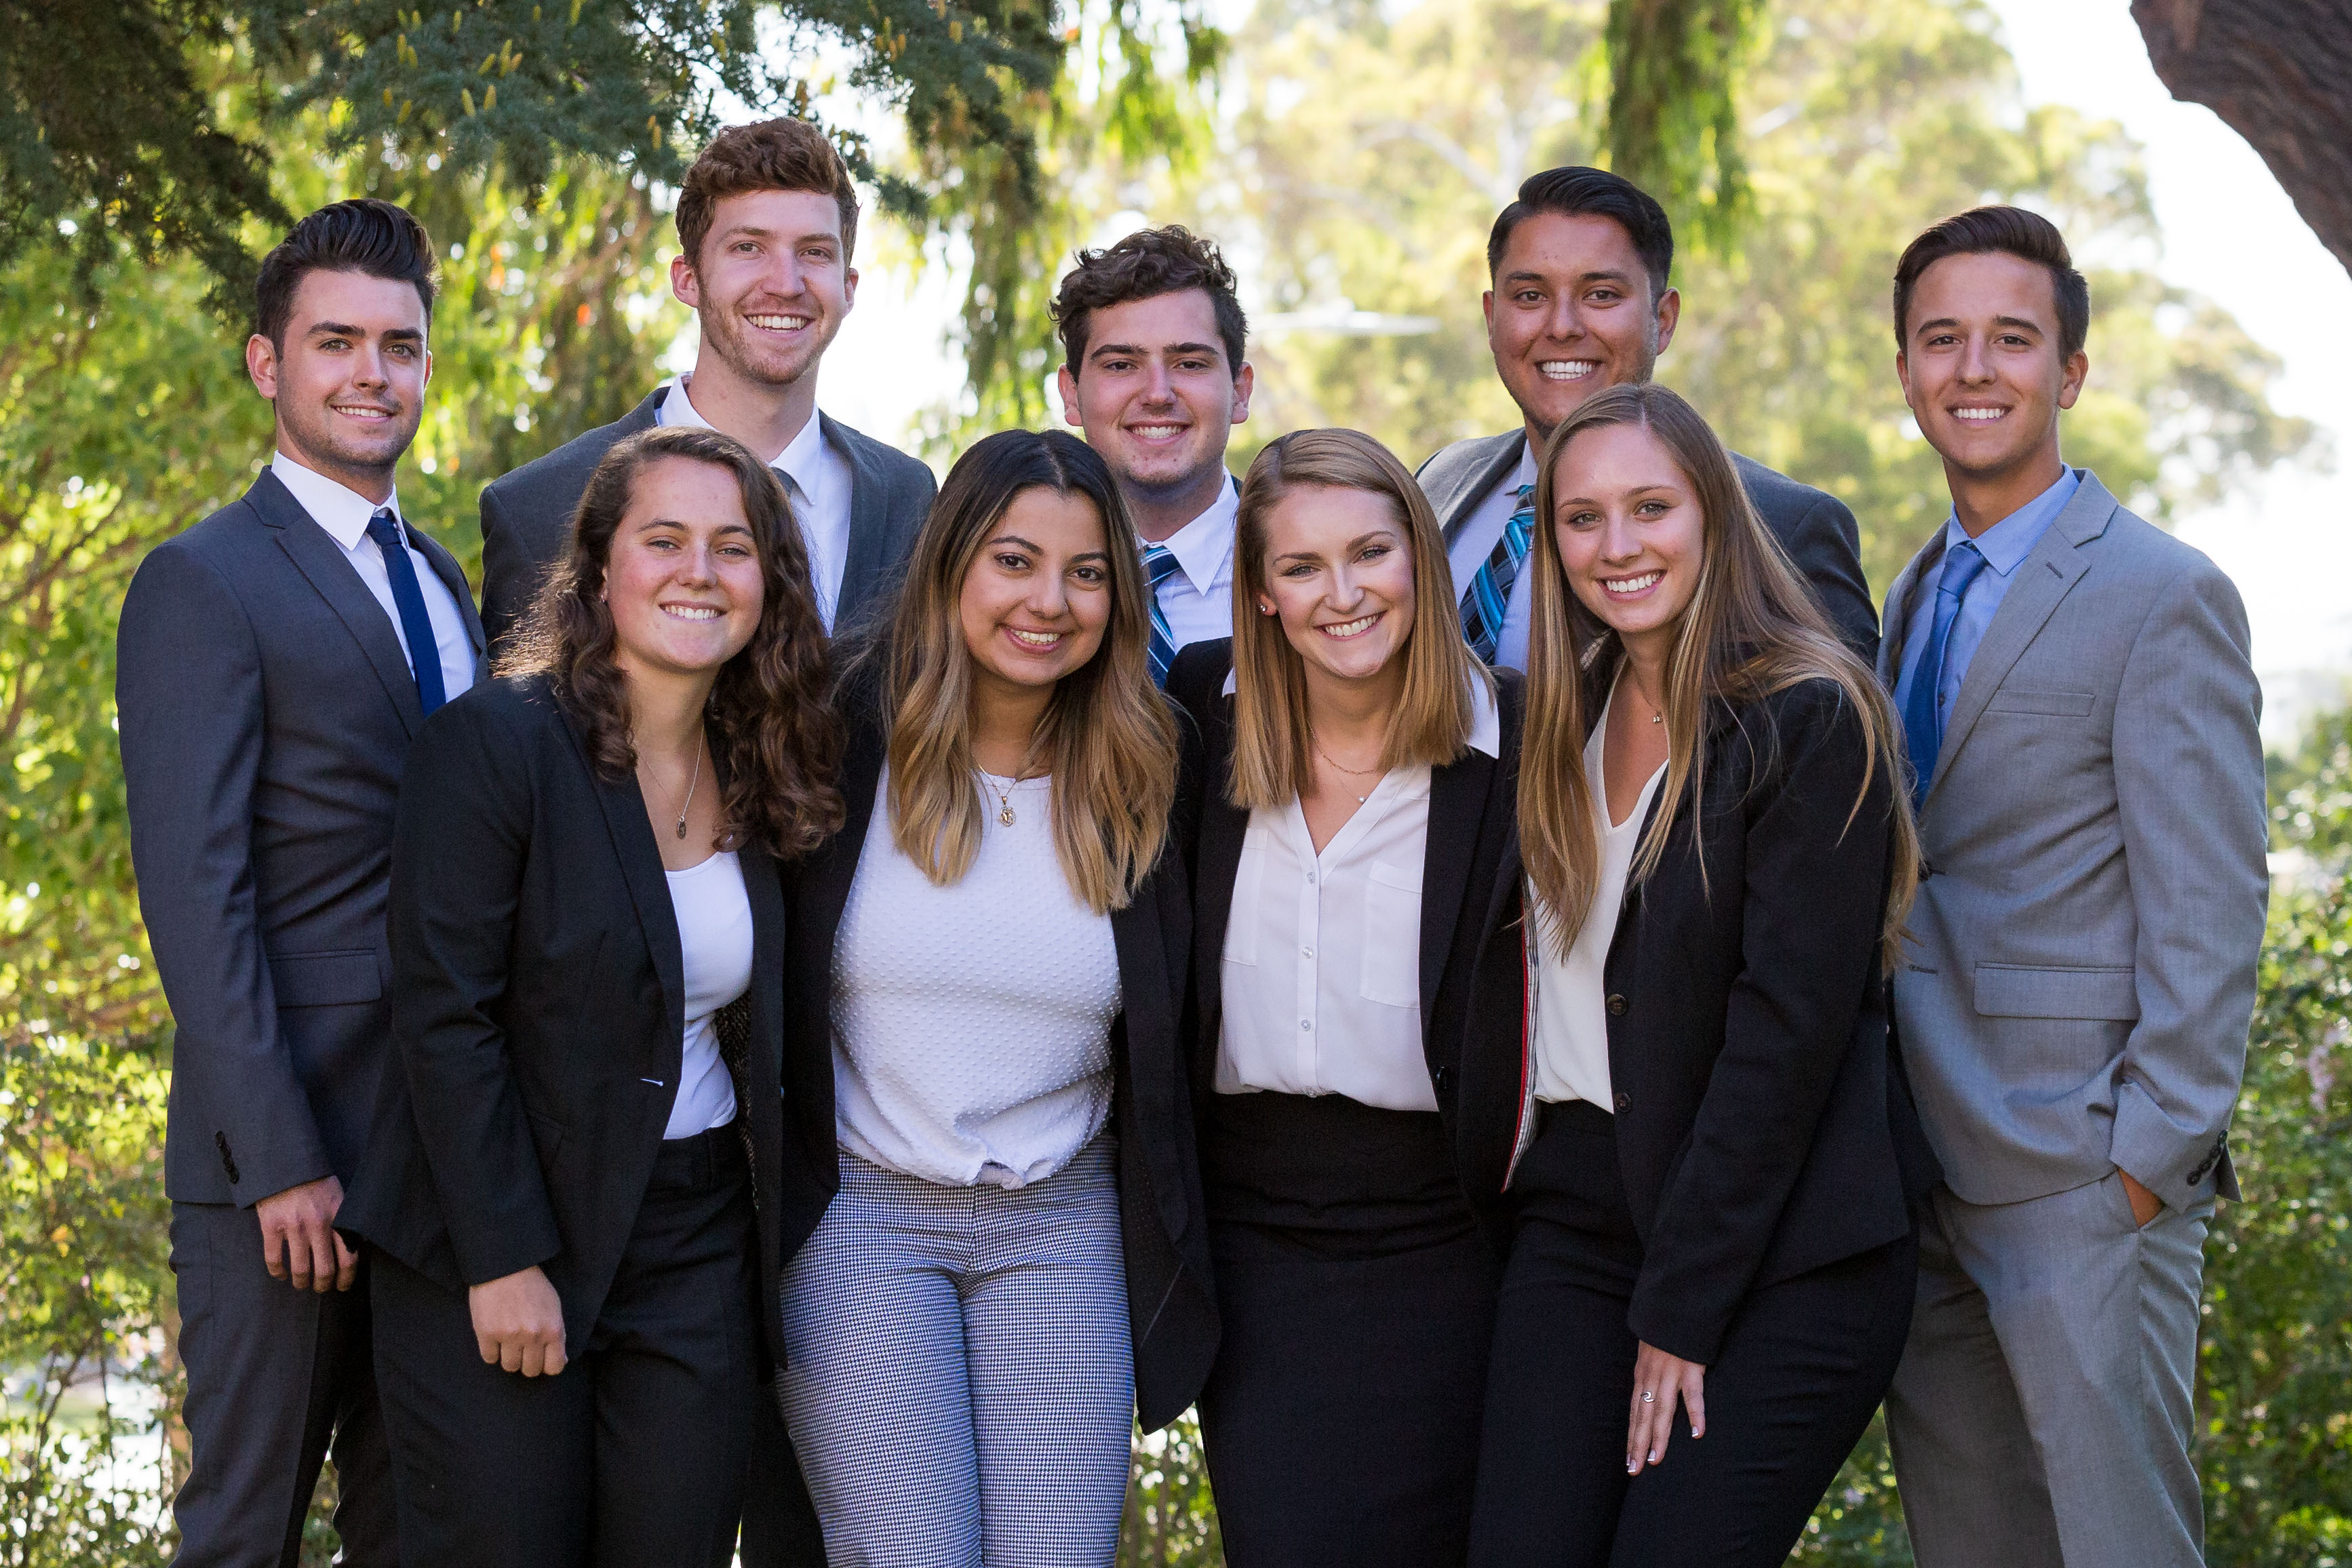 The 9 members of the 2019–20 UUAB stand smiling in a group in business attire